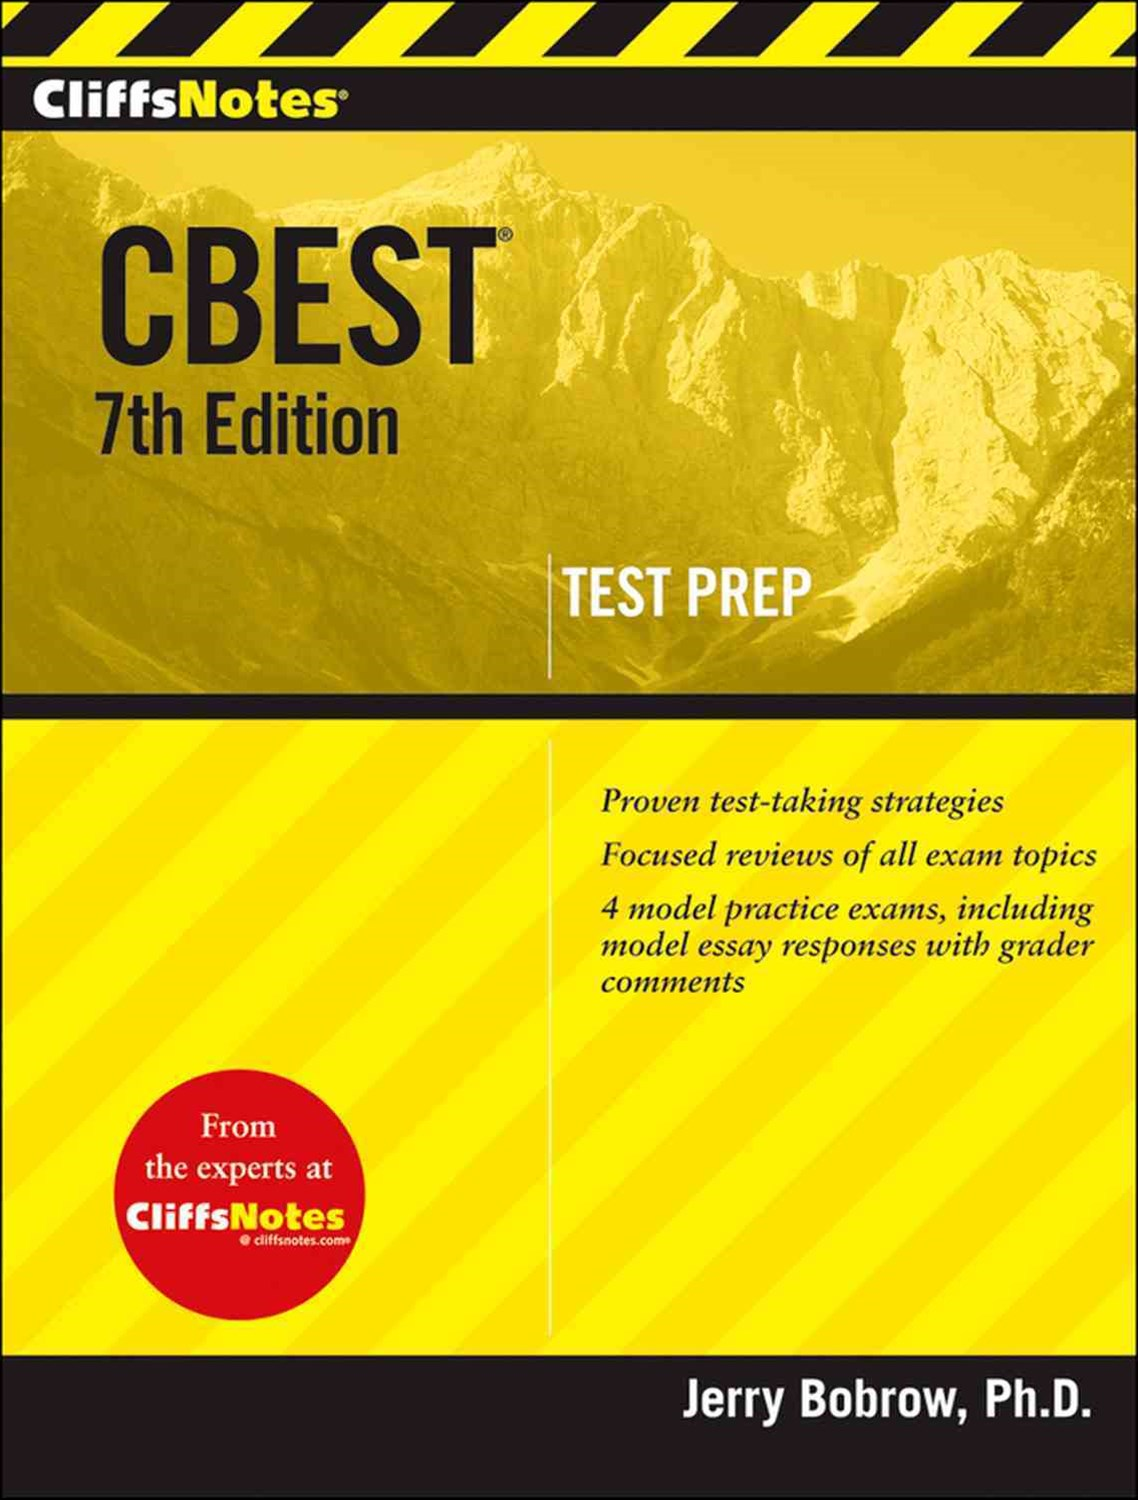 CliffsNotes CBEST: 7th Edition